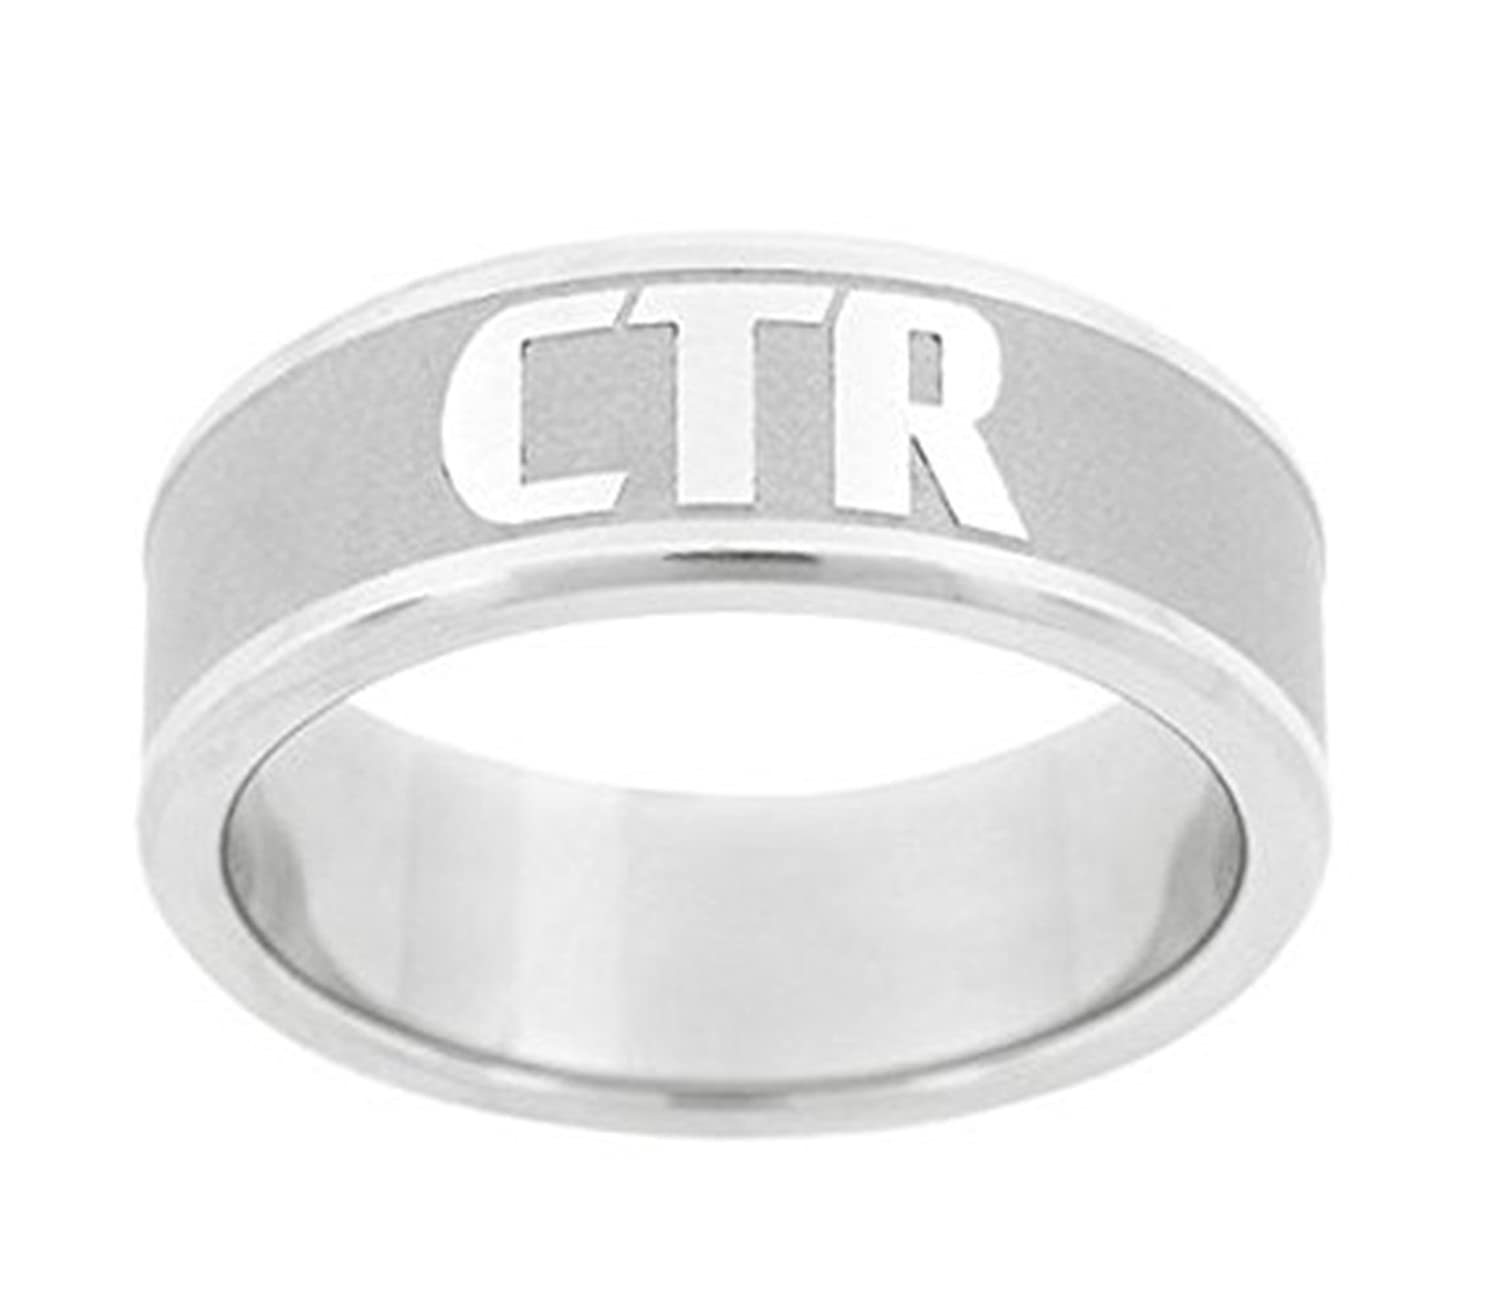 """Frost"" - CTR Ring - Stainless Steel - J151 - One Moment In Time"